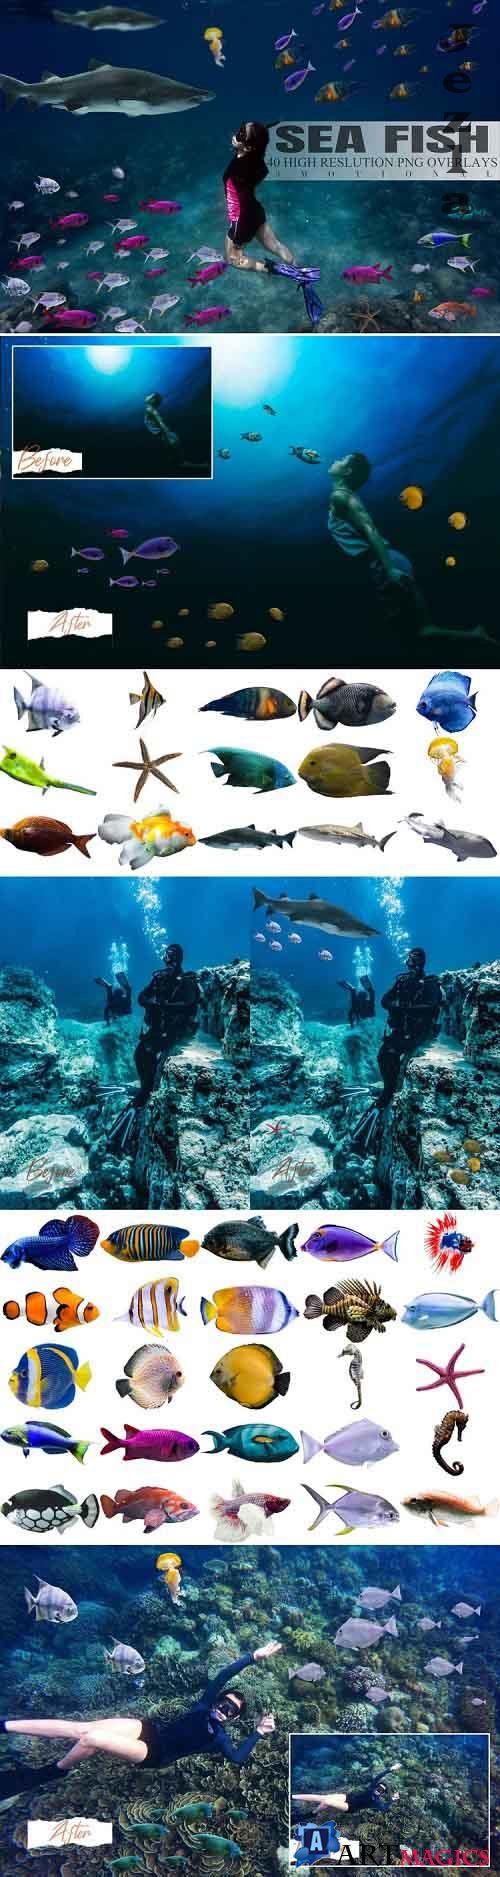 40 Sea Fish Overlays - 819509